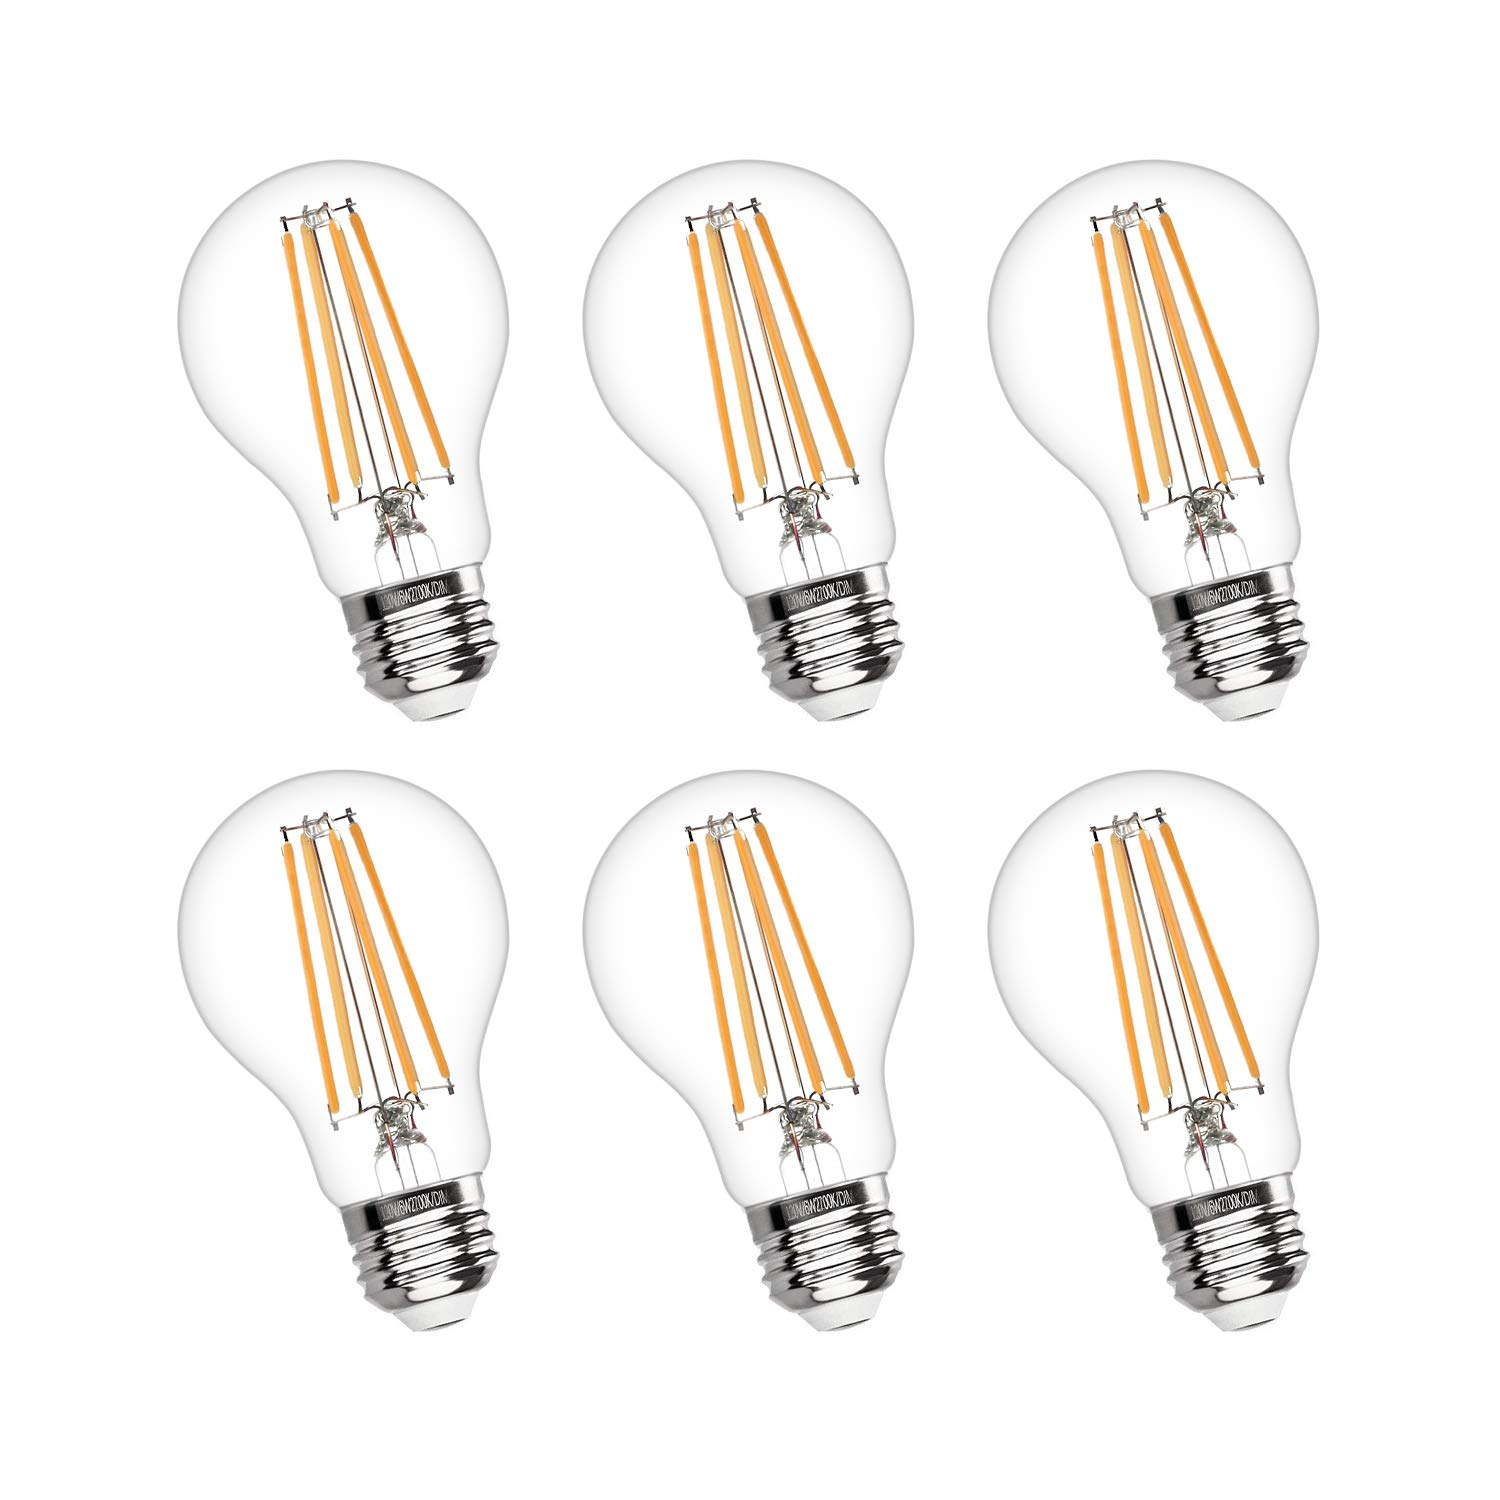 Vintage LED Edison Bulb Dimmable 6W A19 LED Light Bulbs 2700K Soft White 600LM Led Filament Bulb 60W Incandescent Equivalent E26 Medium Base Decorative Clear Glass for Home, Restaurant, Cafe, 6 Pack by Boncoo (Image #1)